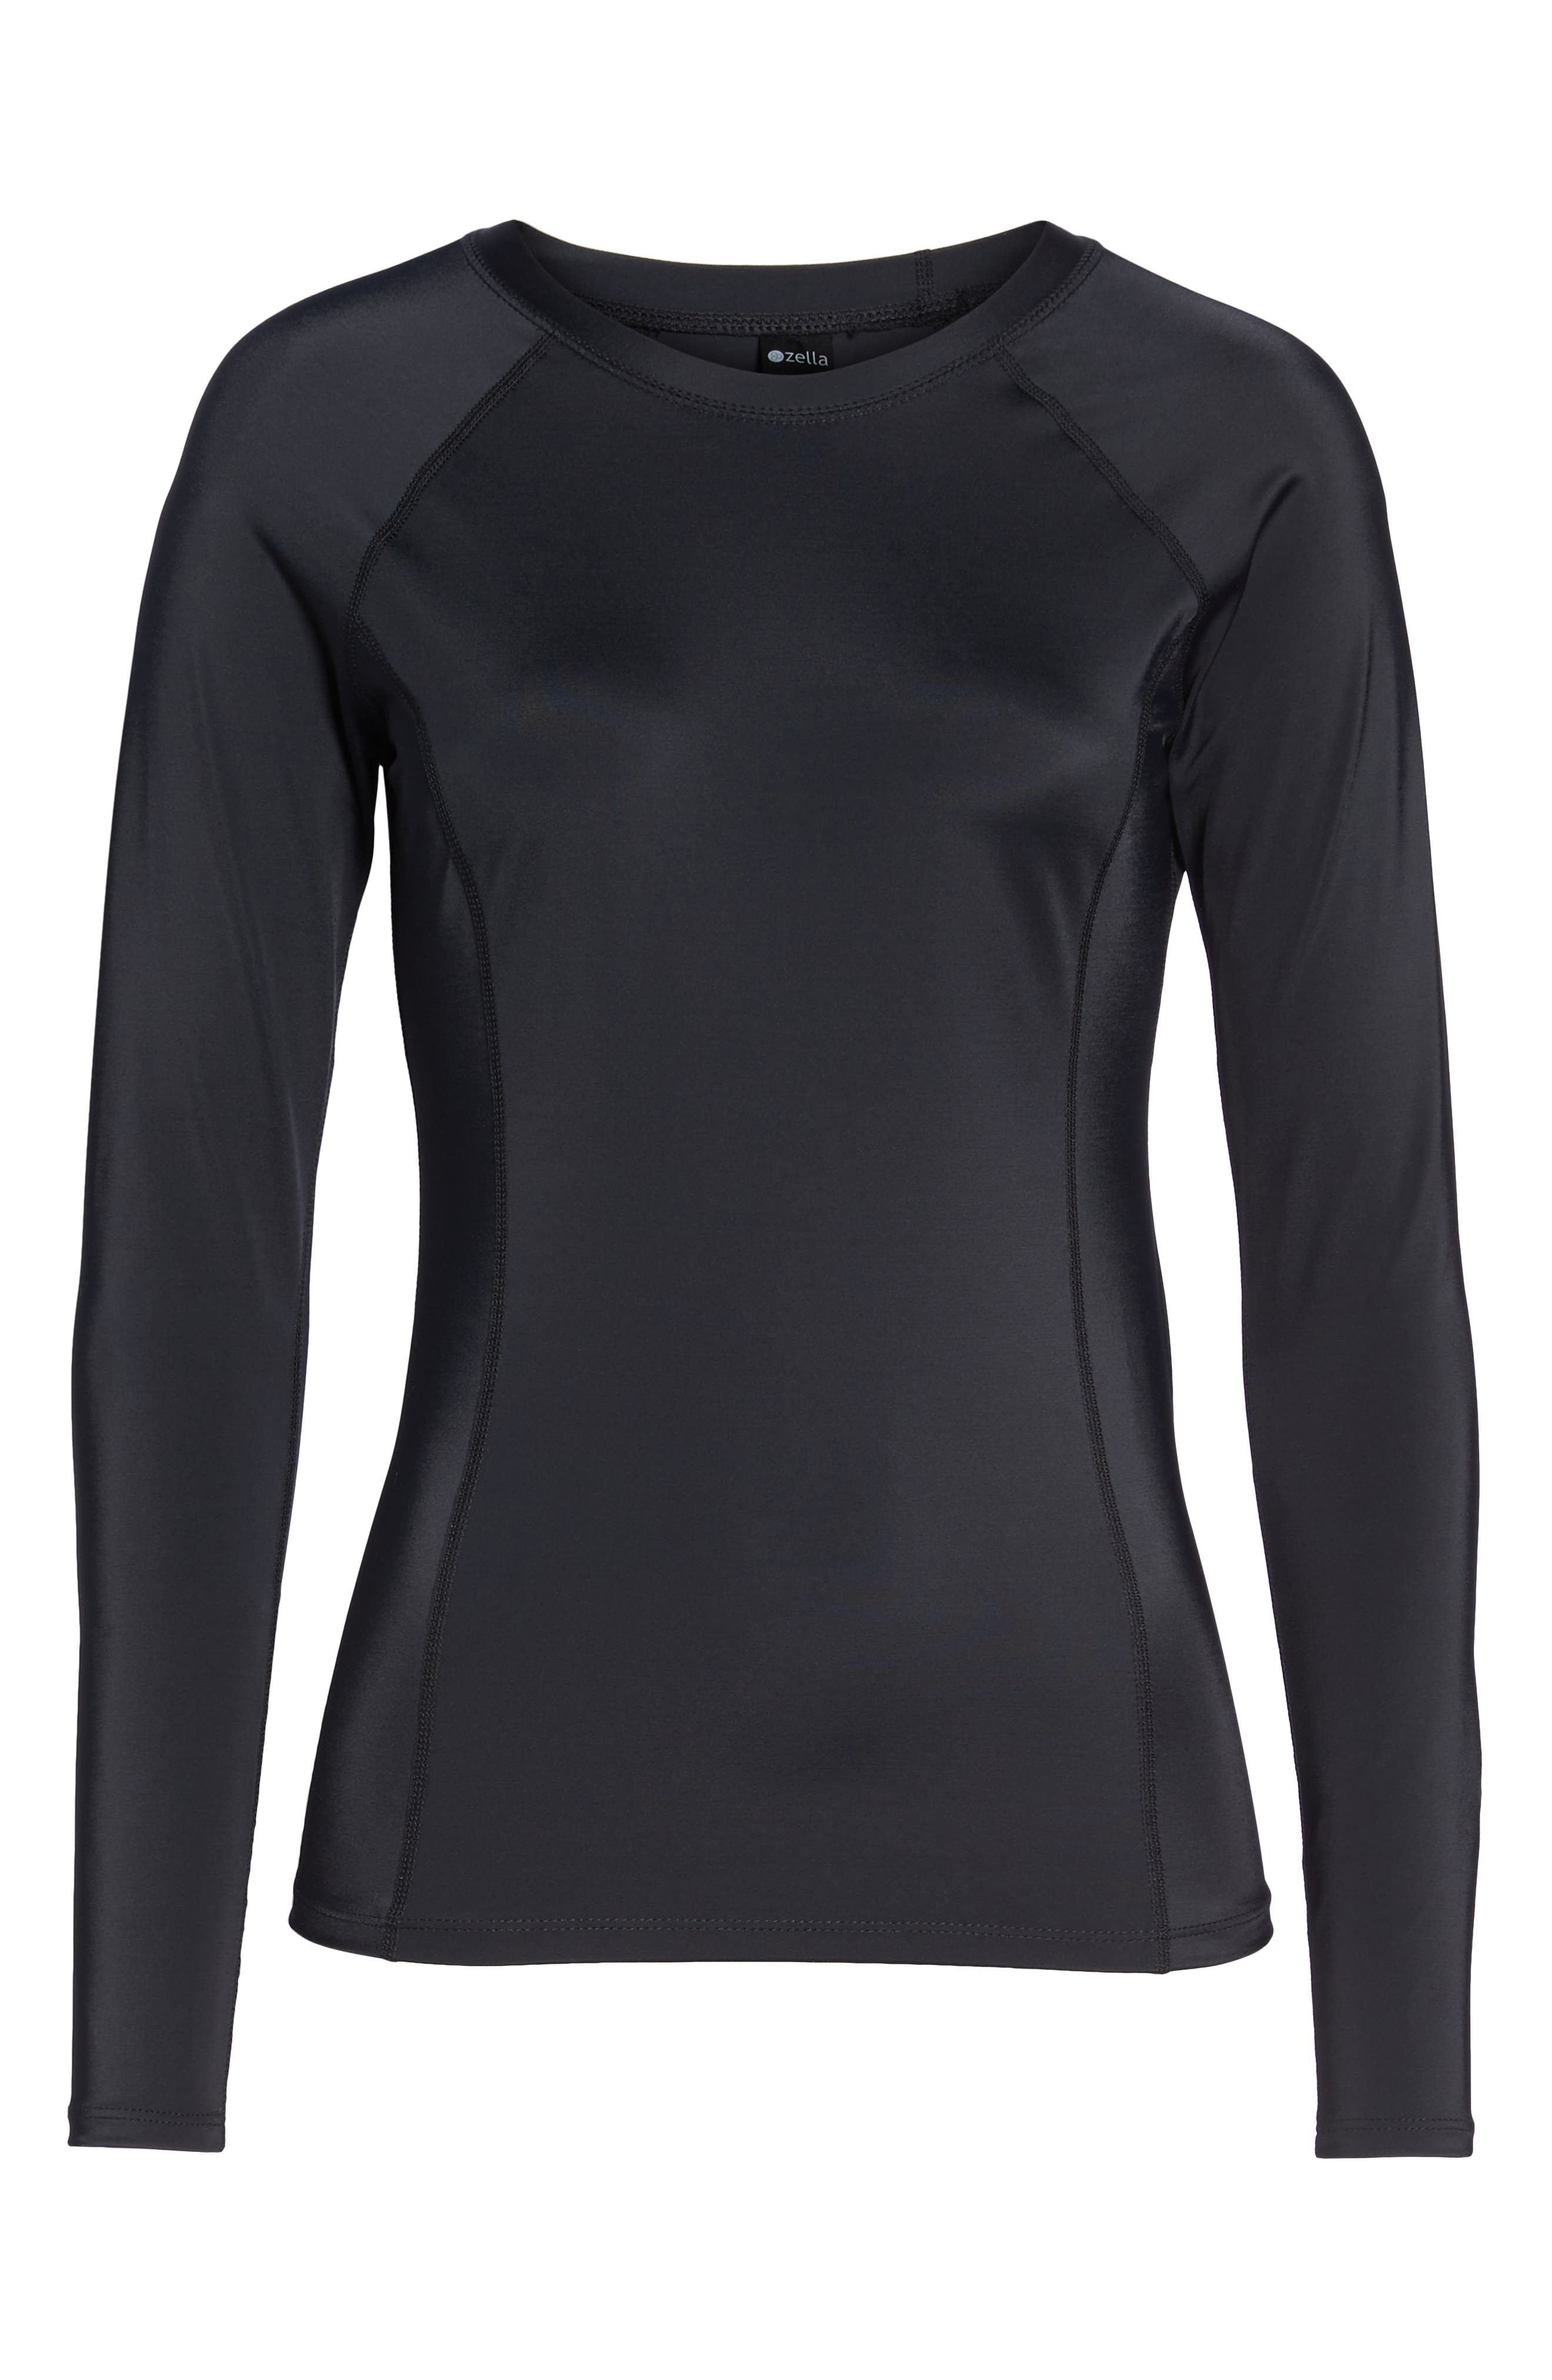 Rashguard,                             Alternate thumbnail 6, color,                             Black